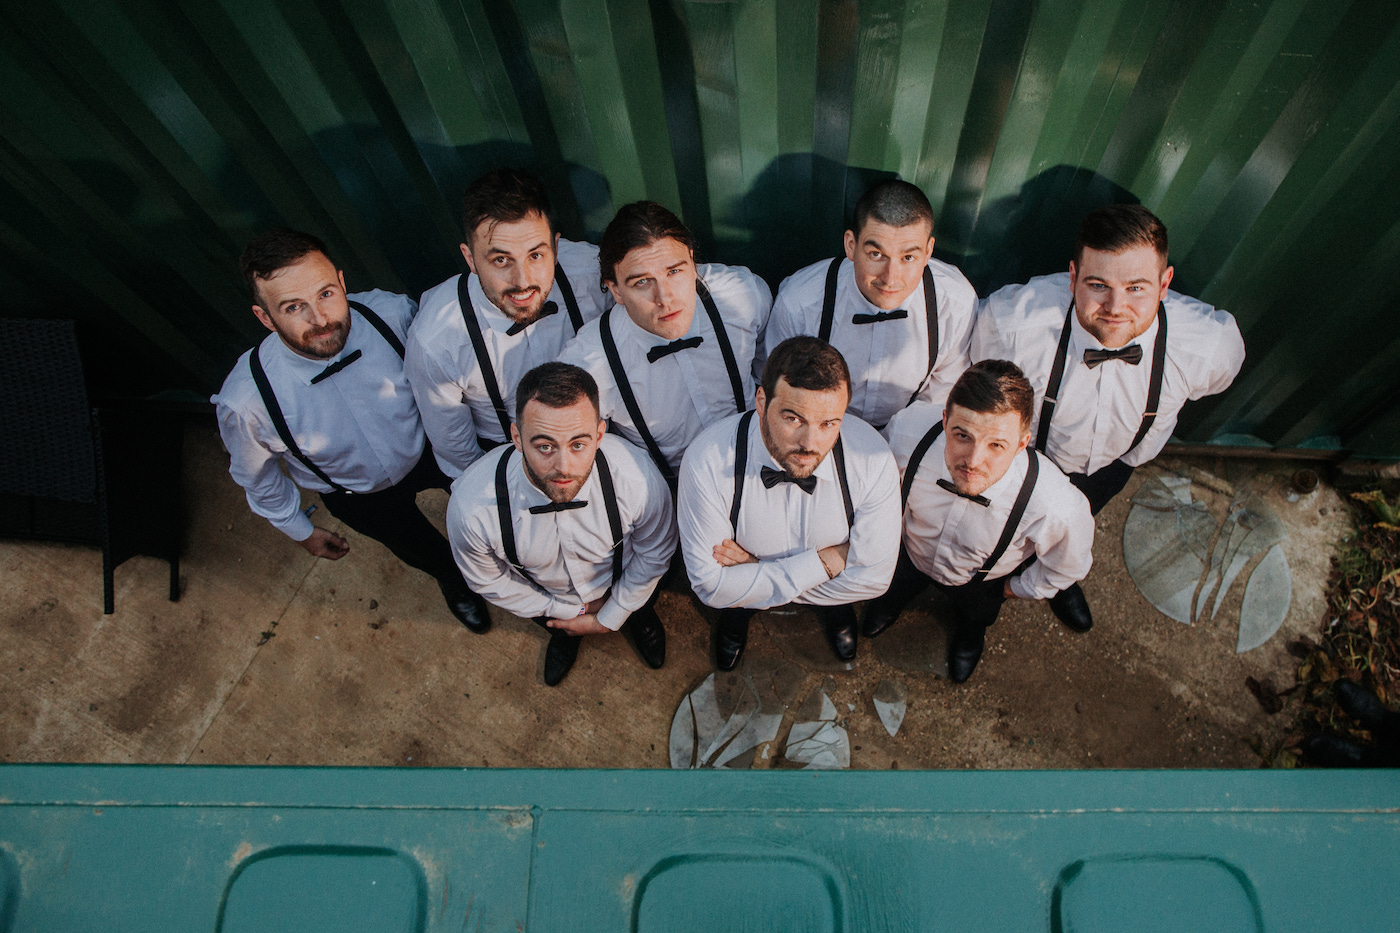 kellyfest festival wedding groom groomsmen